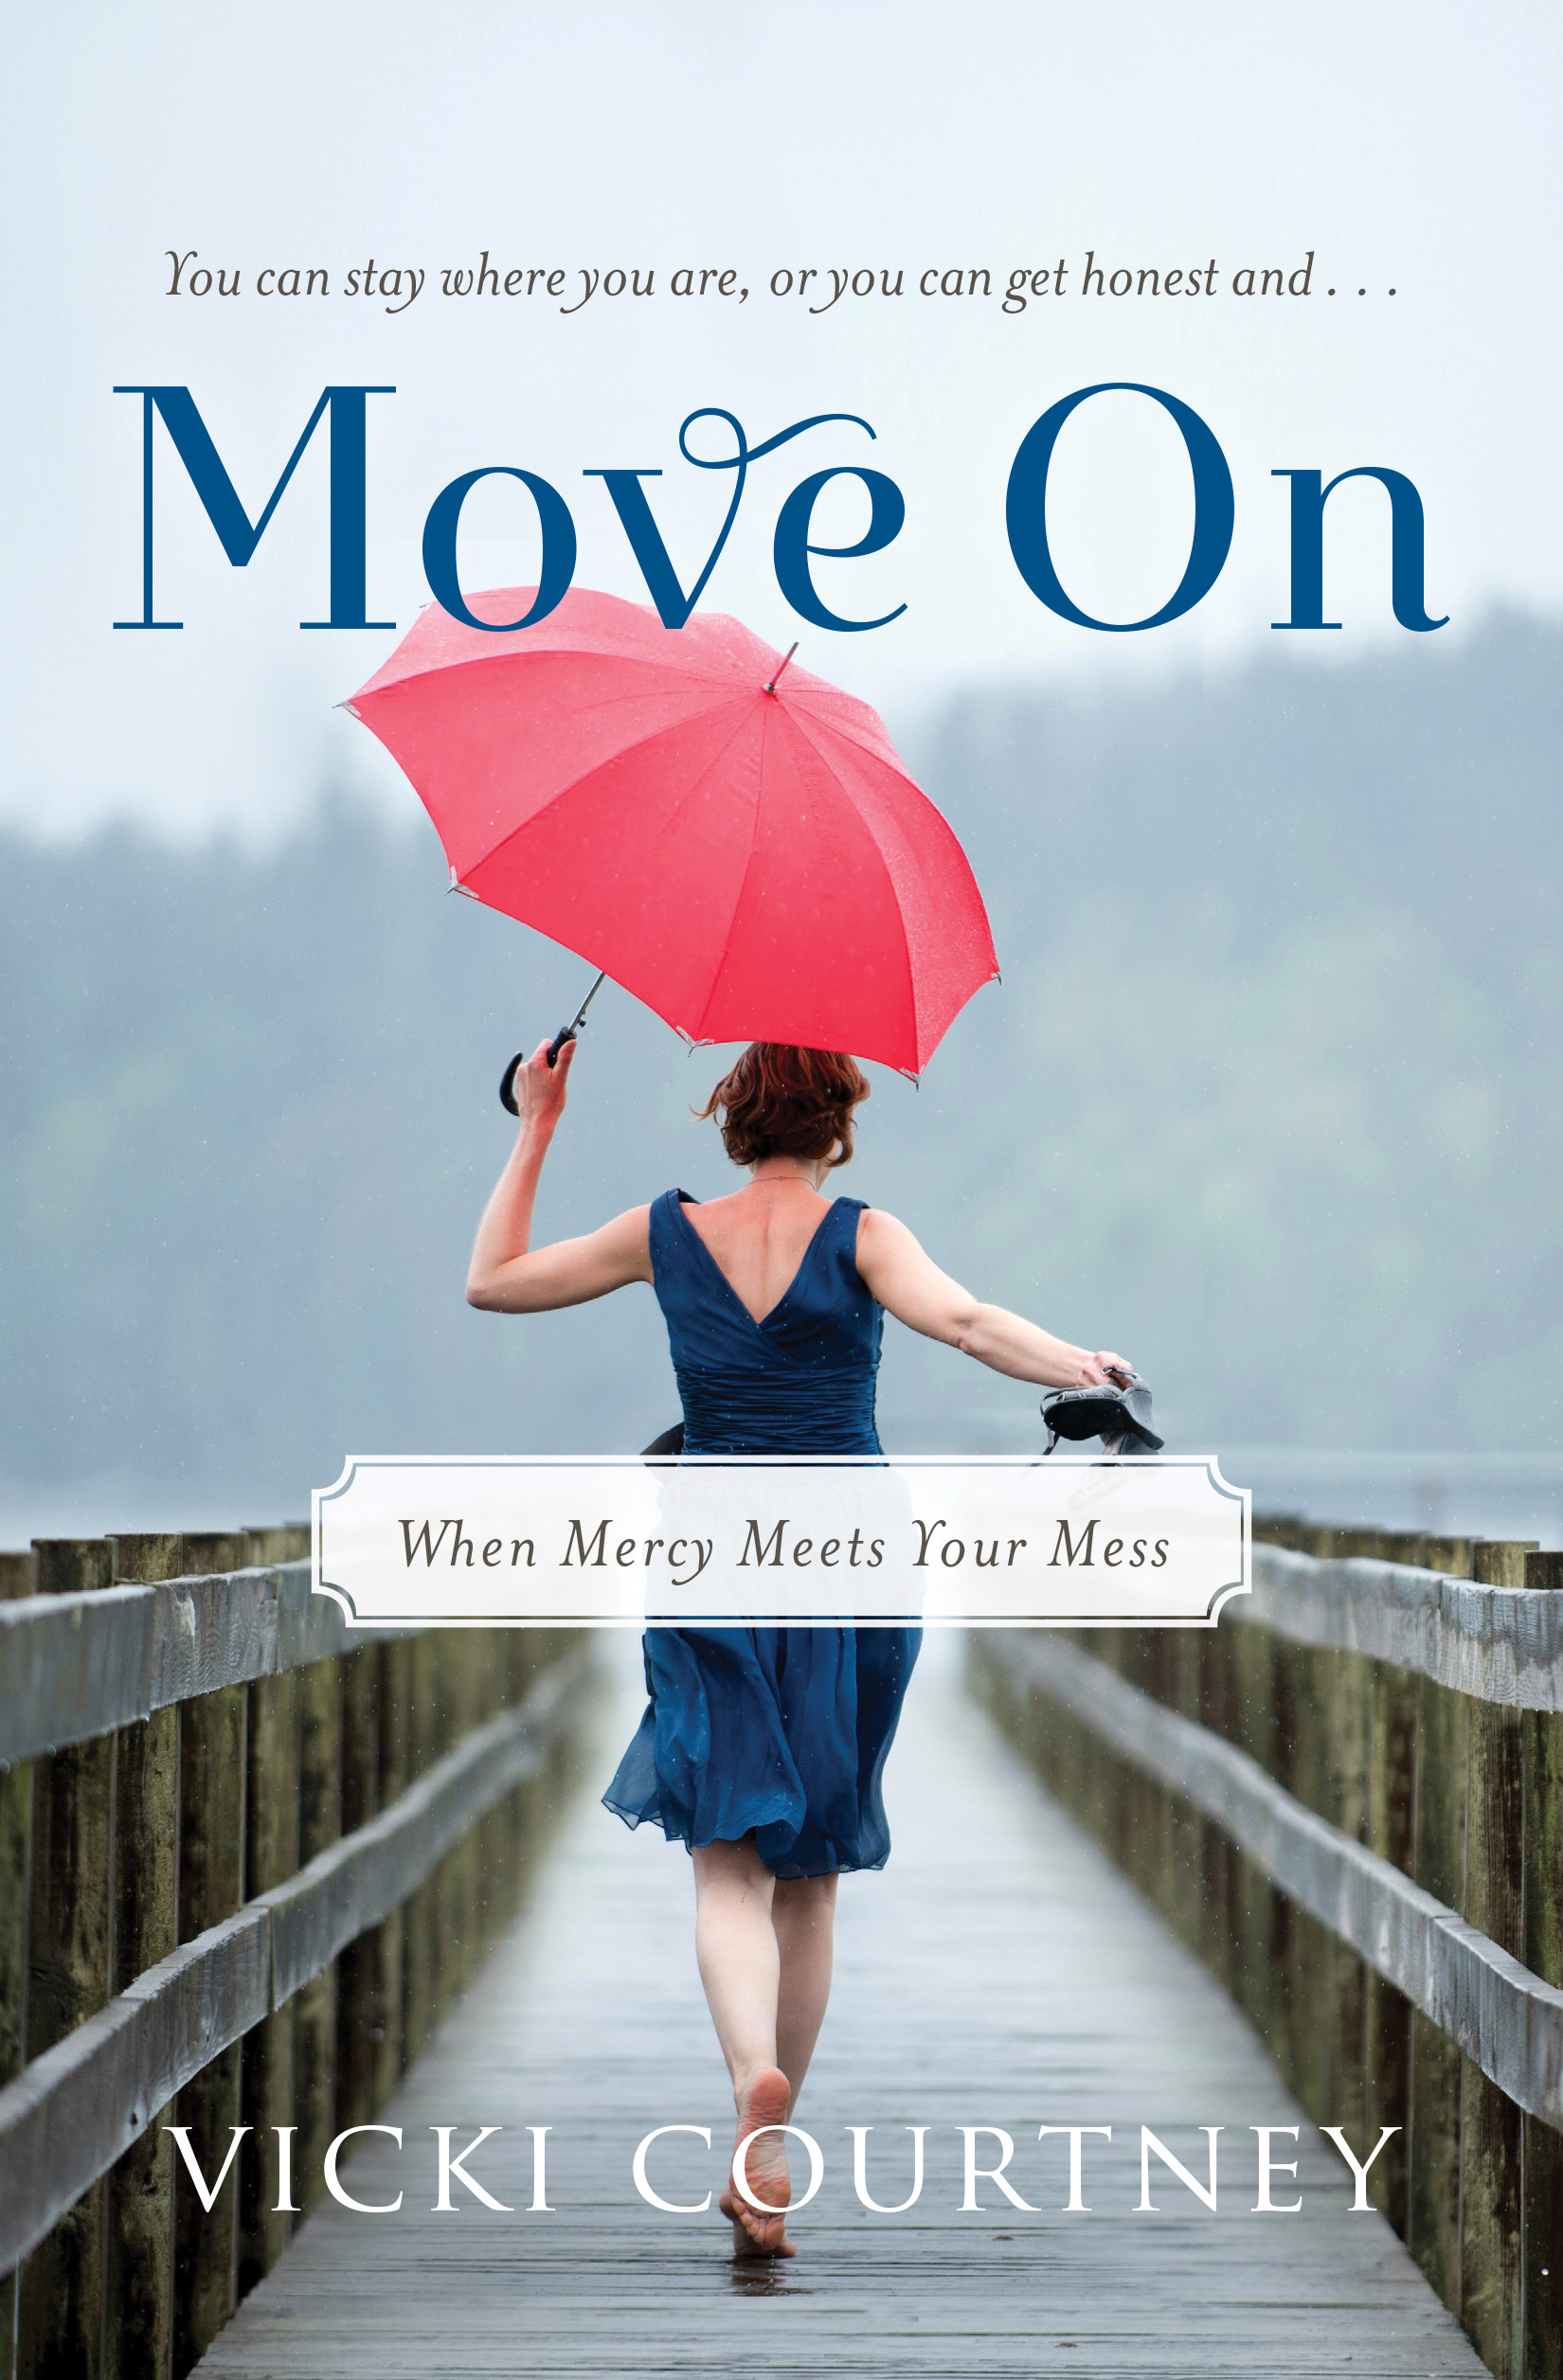 Give-away to celebrate the release of Move On (and a really big dare)!